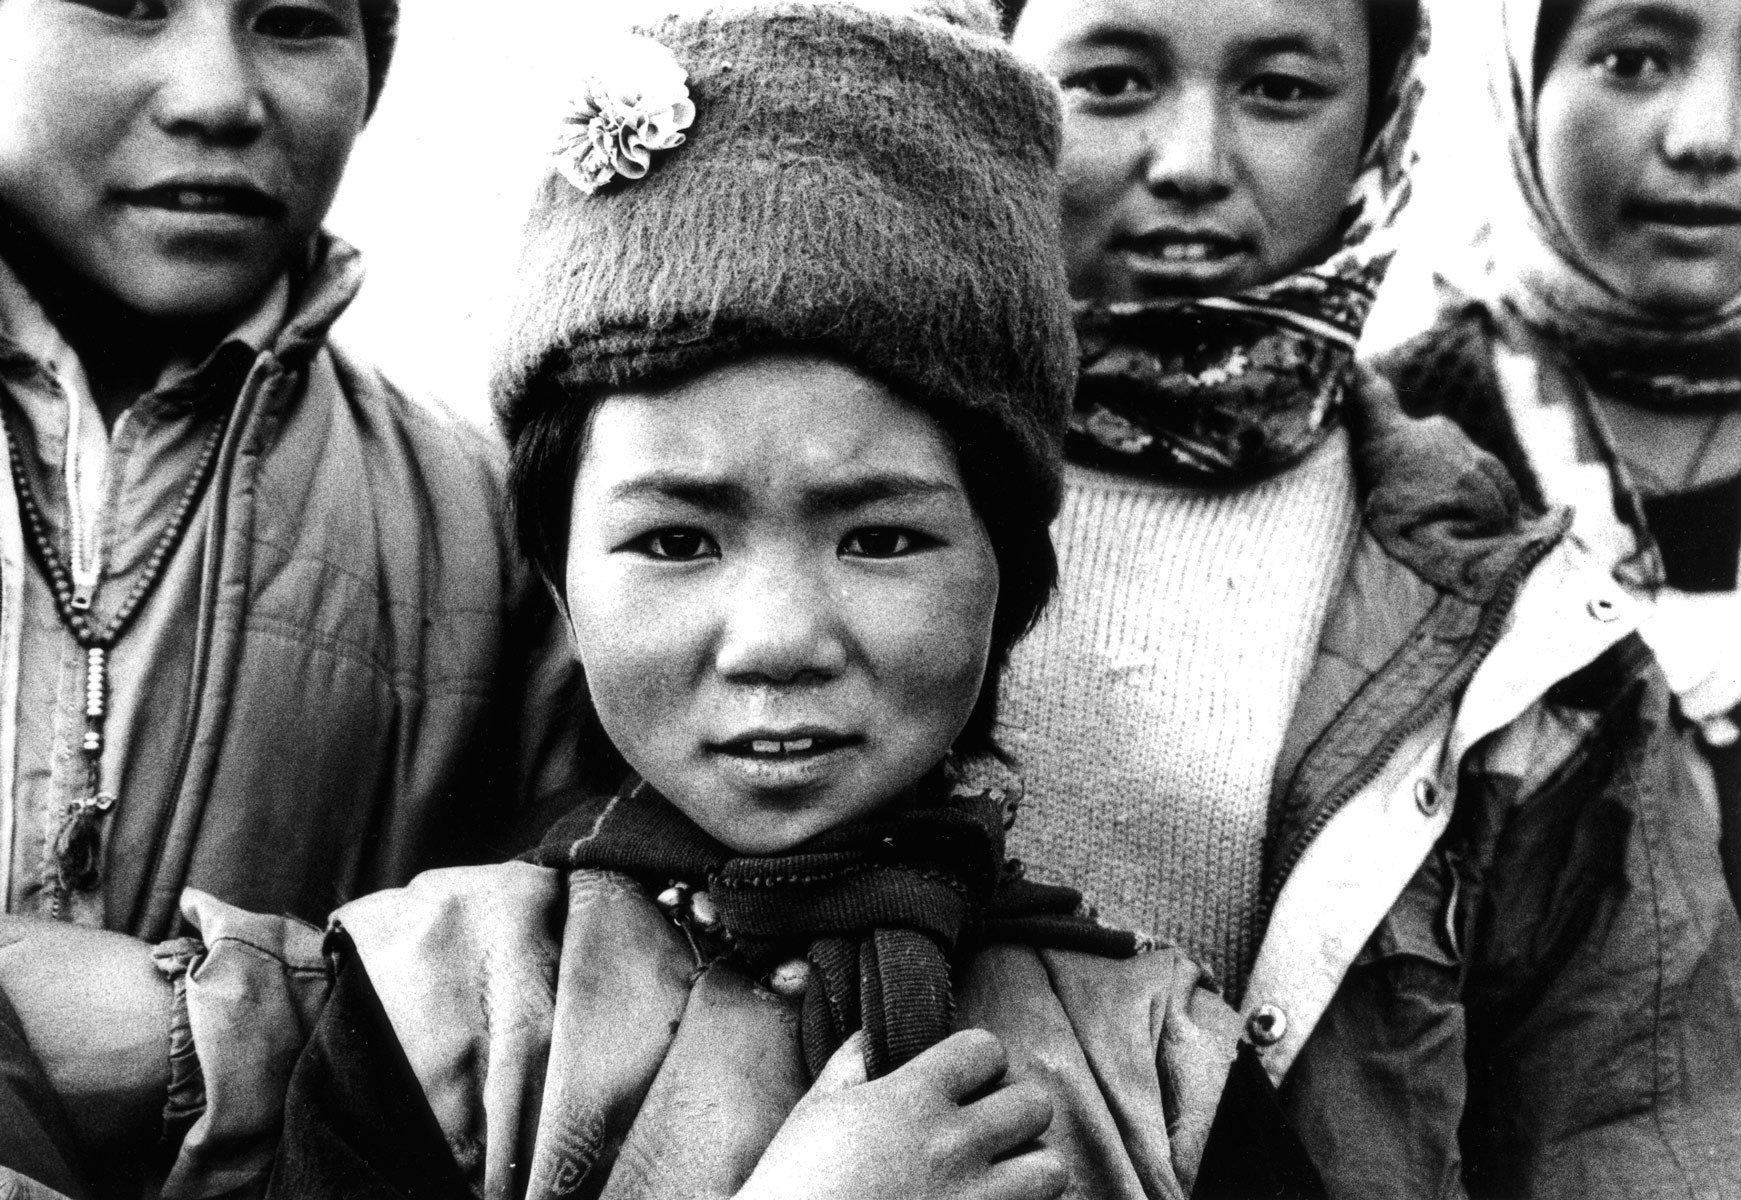 1ladakh_india_children_nuns.jpg